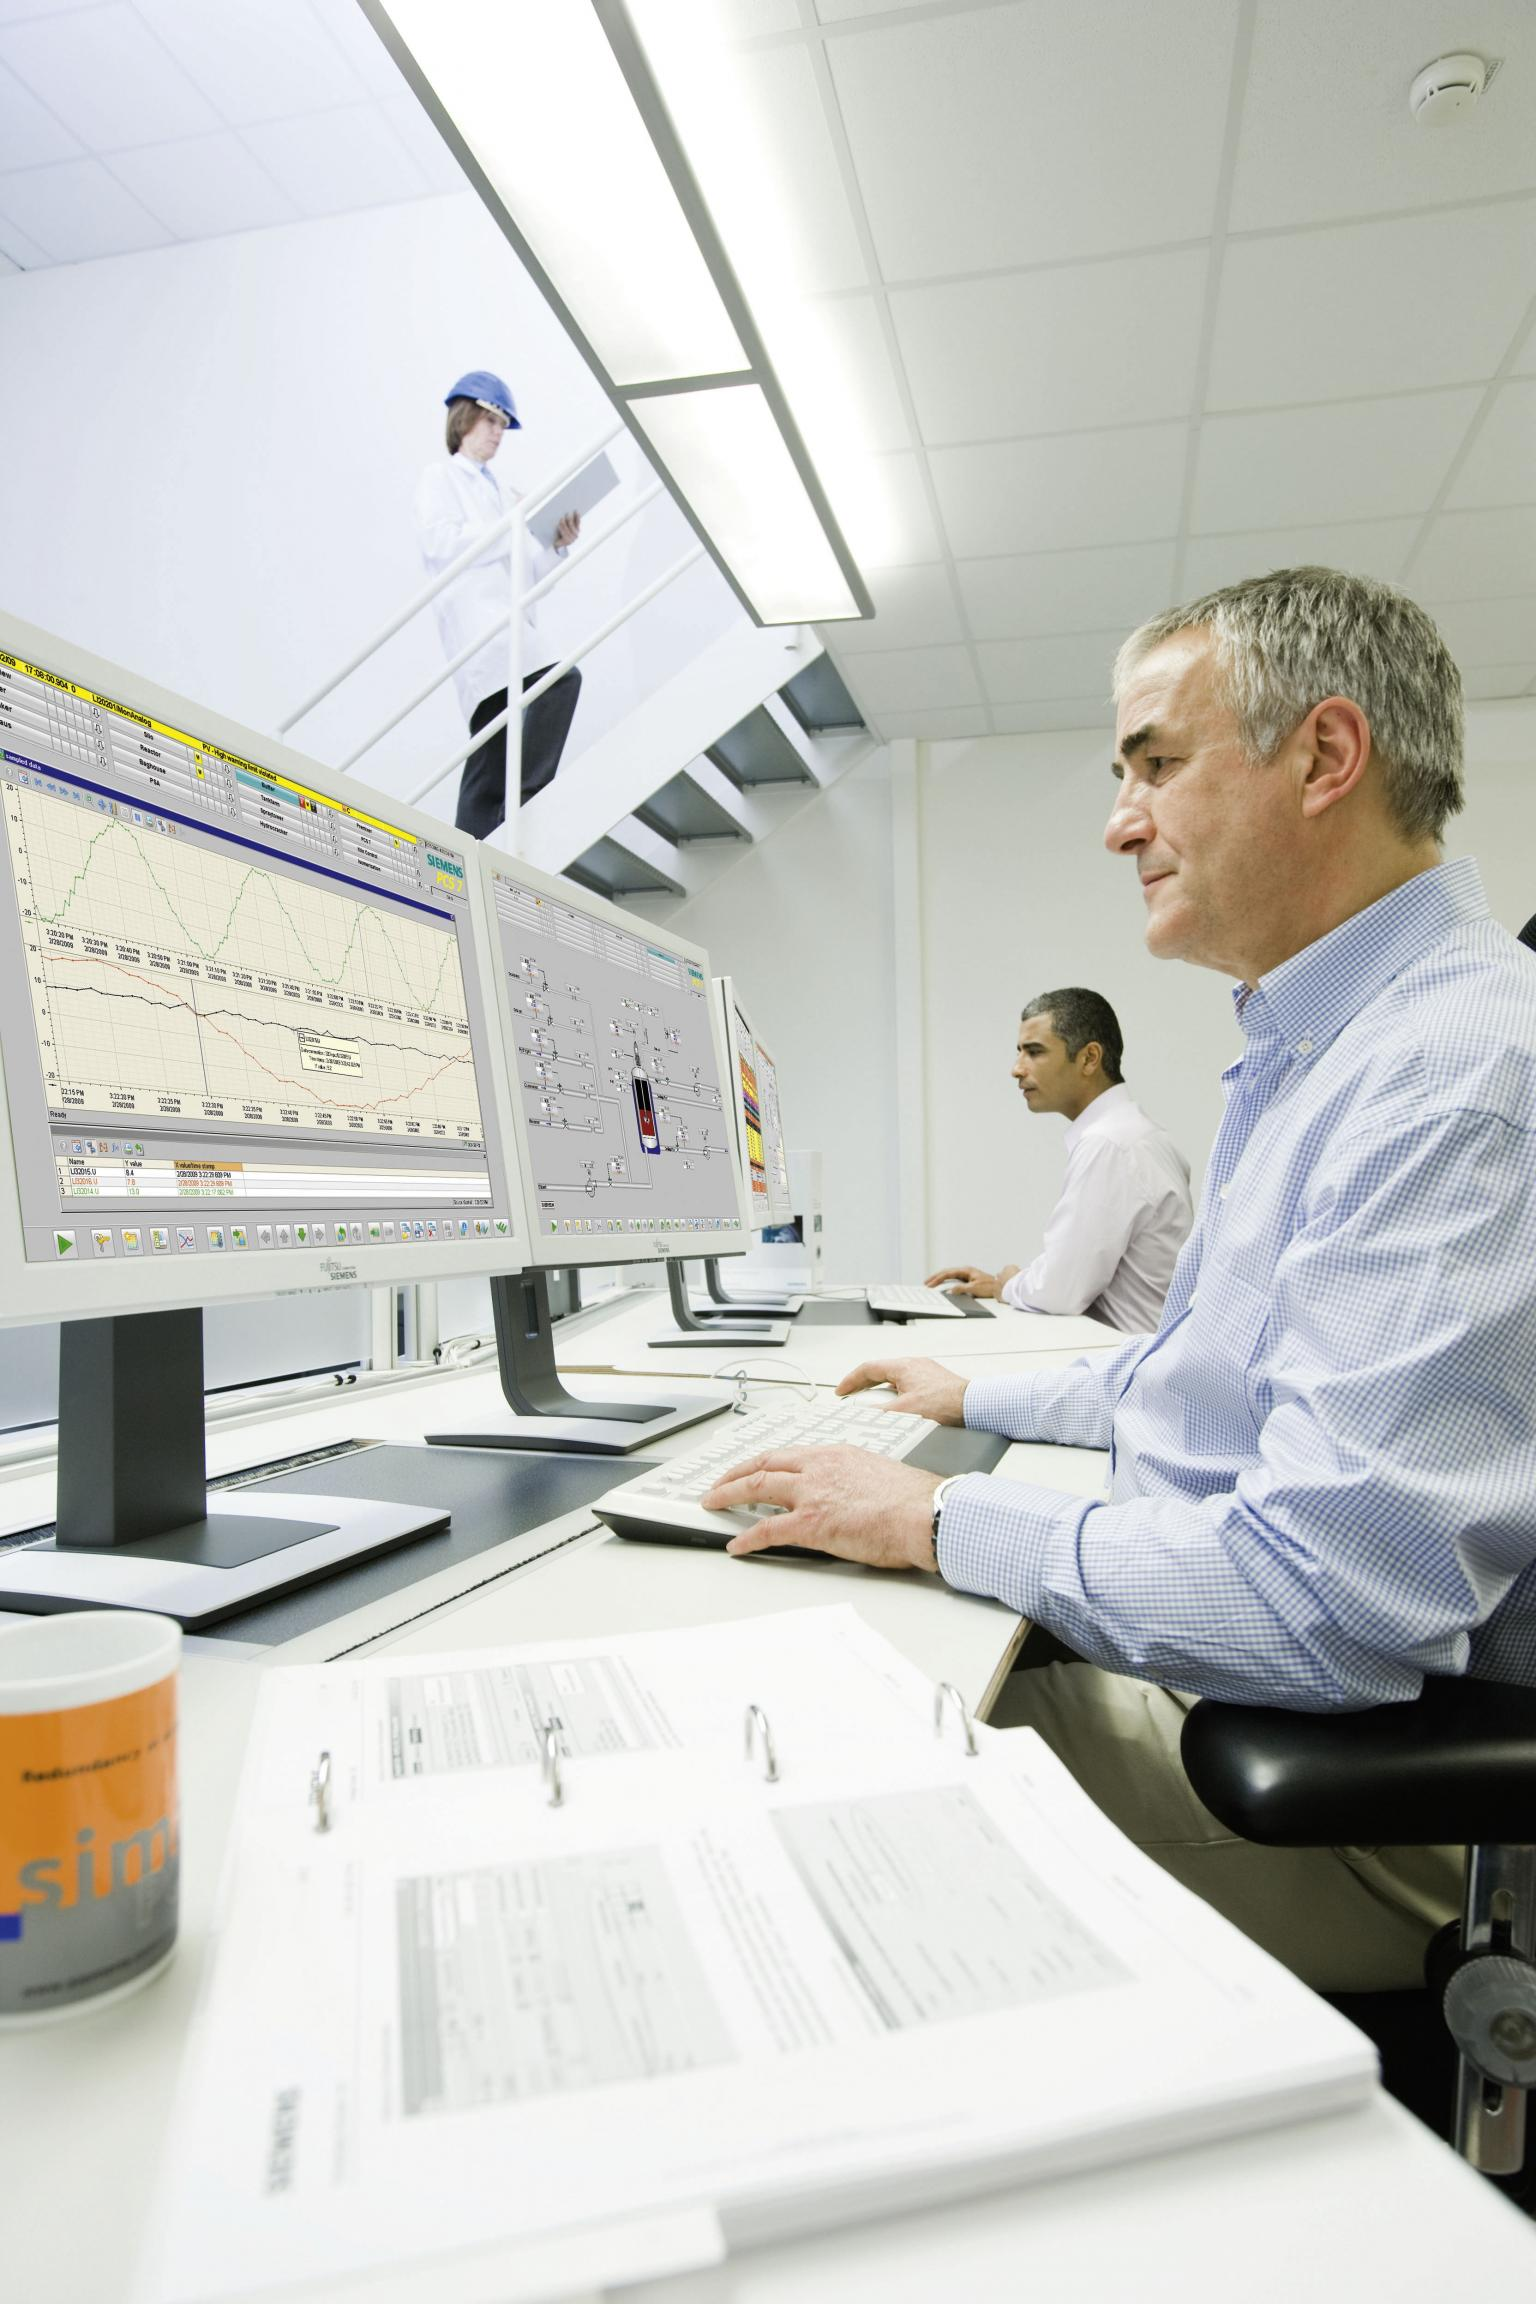 Siemens offers the Simatic process control system to help plants improve productivity